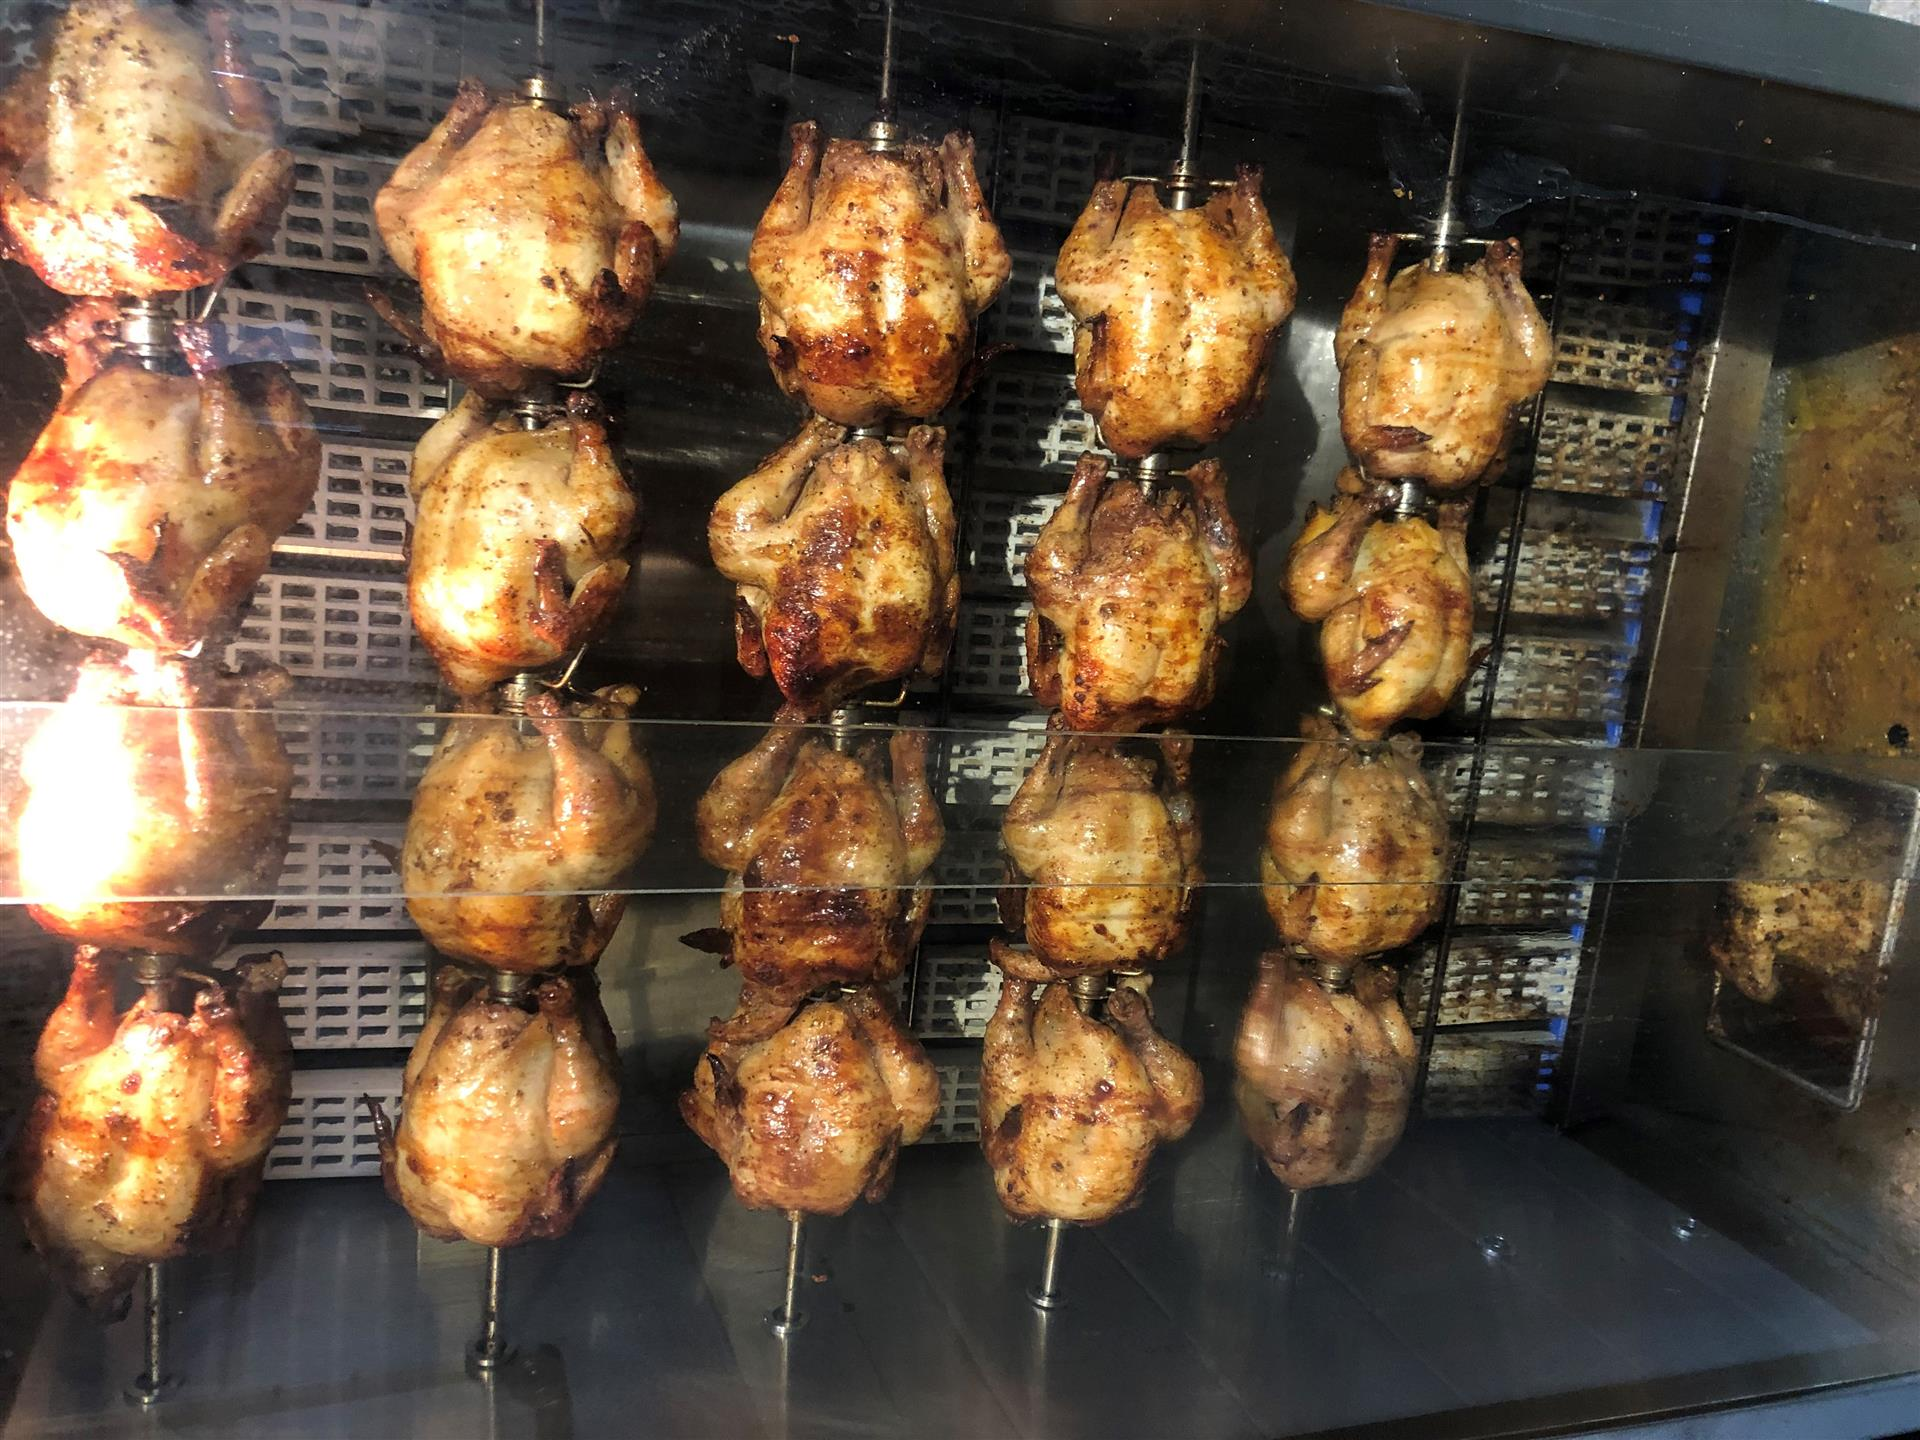 Chickens roasting in outdoor BBQ pit